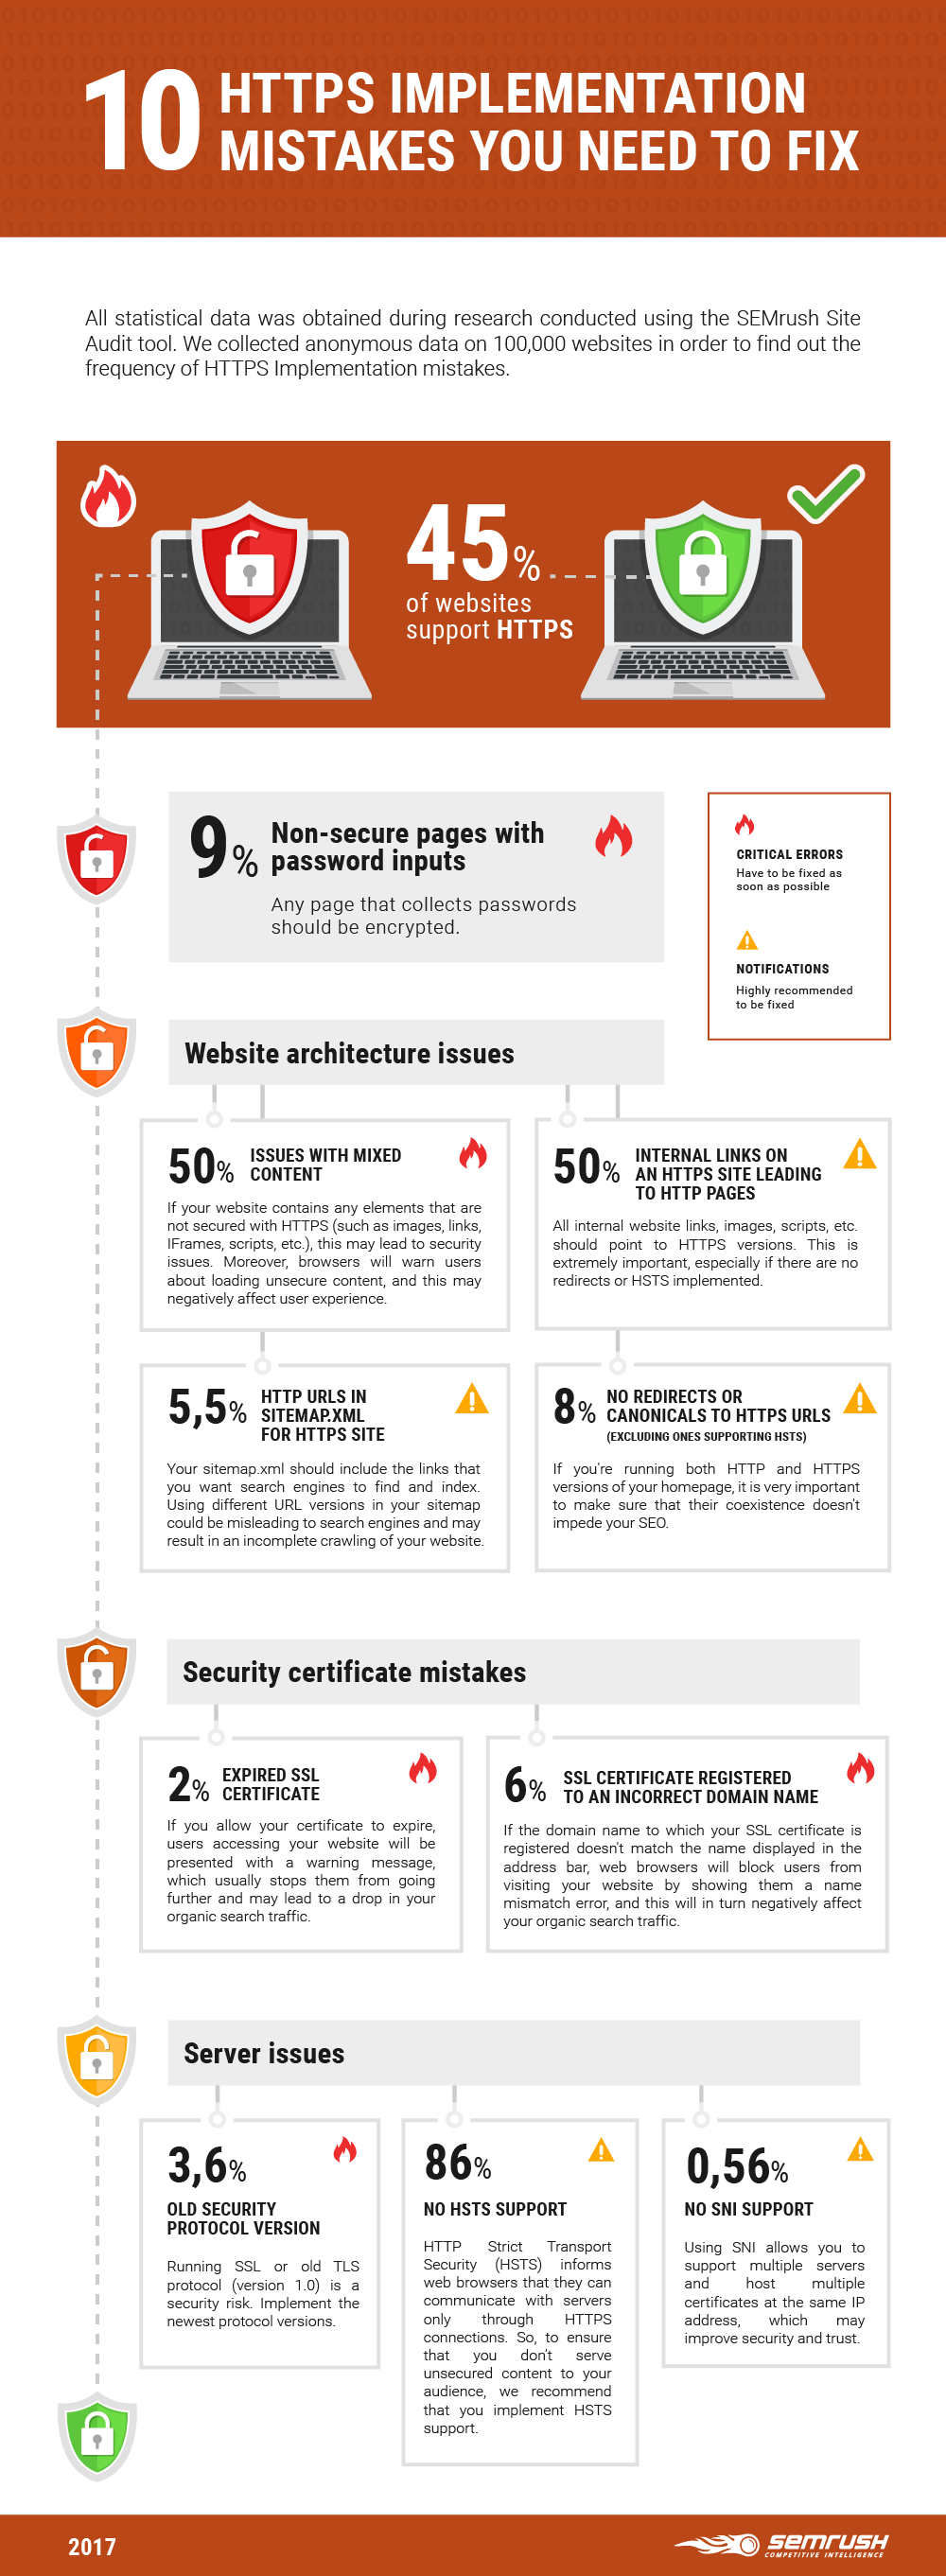 HTTPS Implementation mistakes